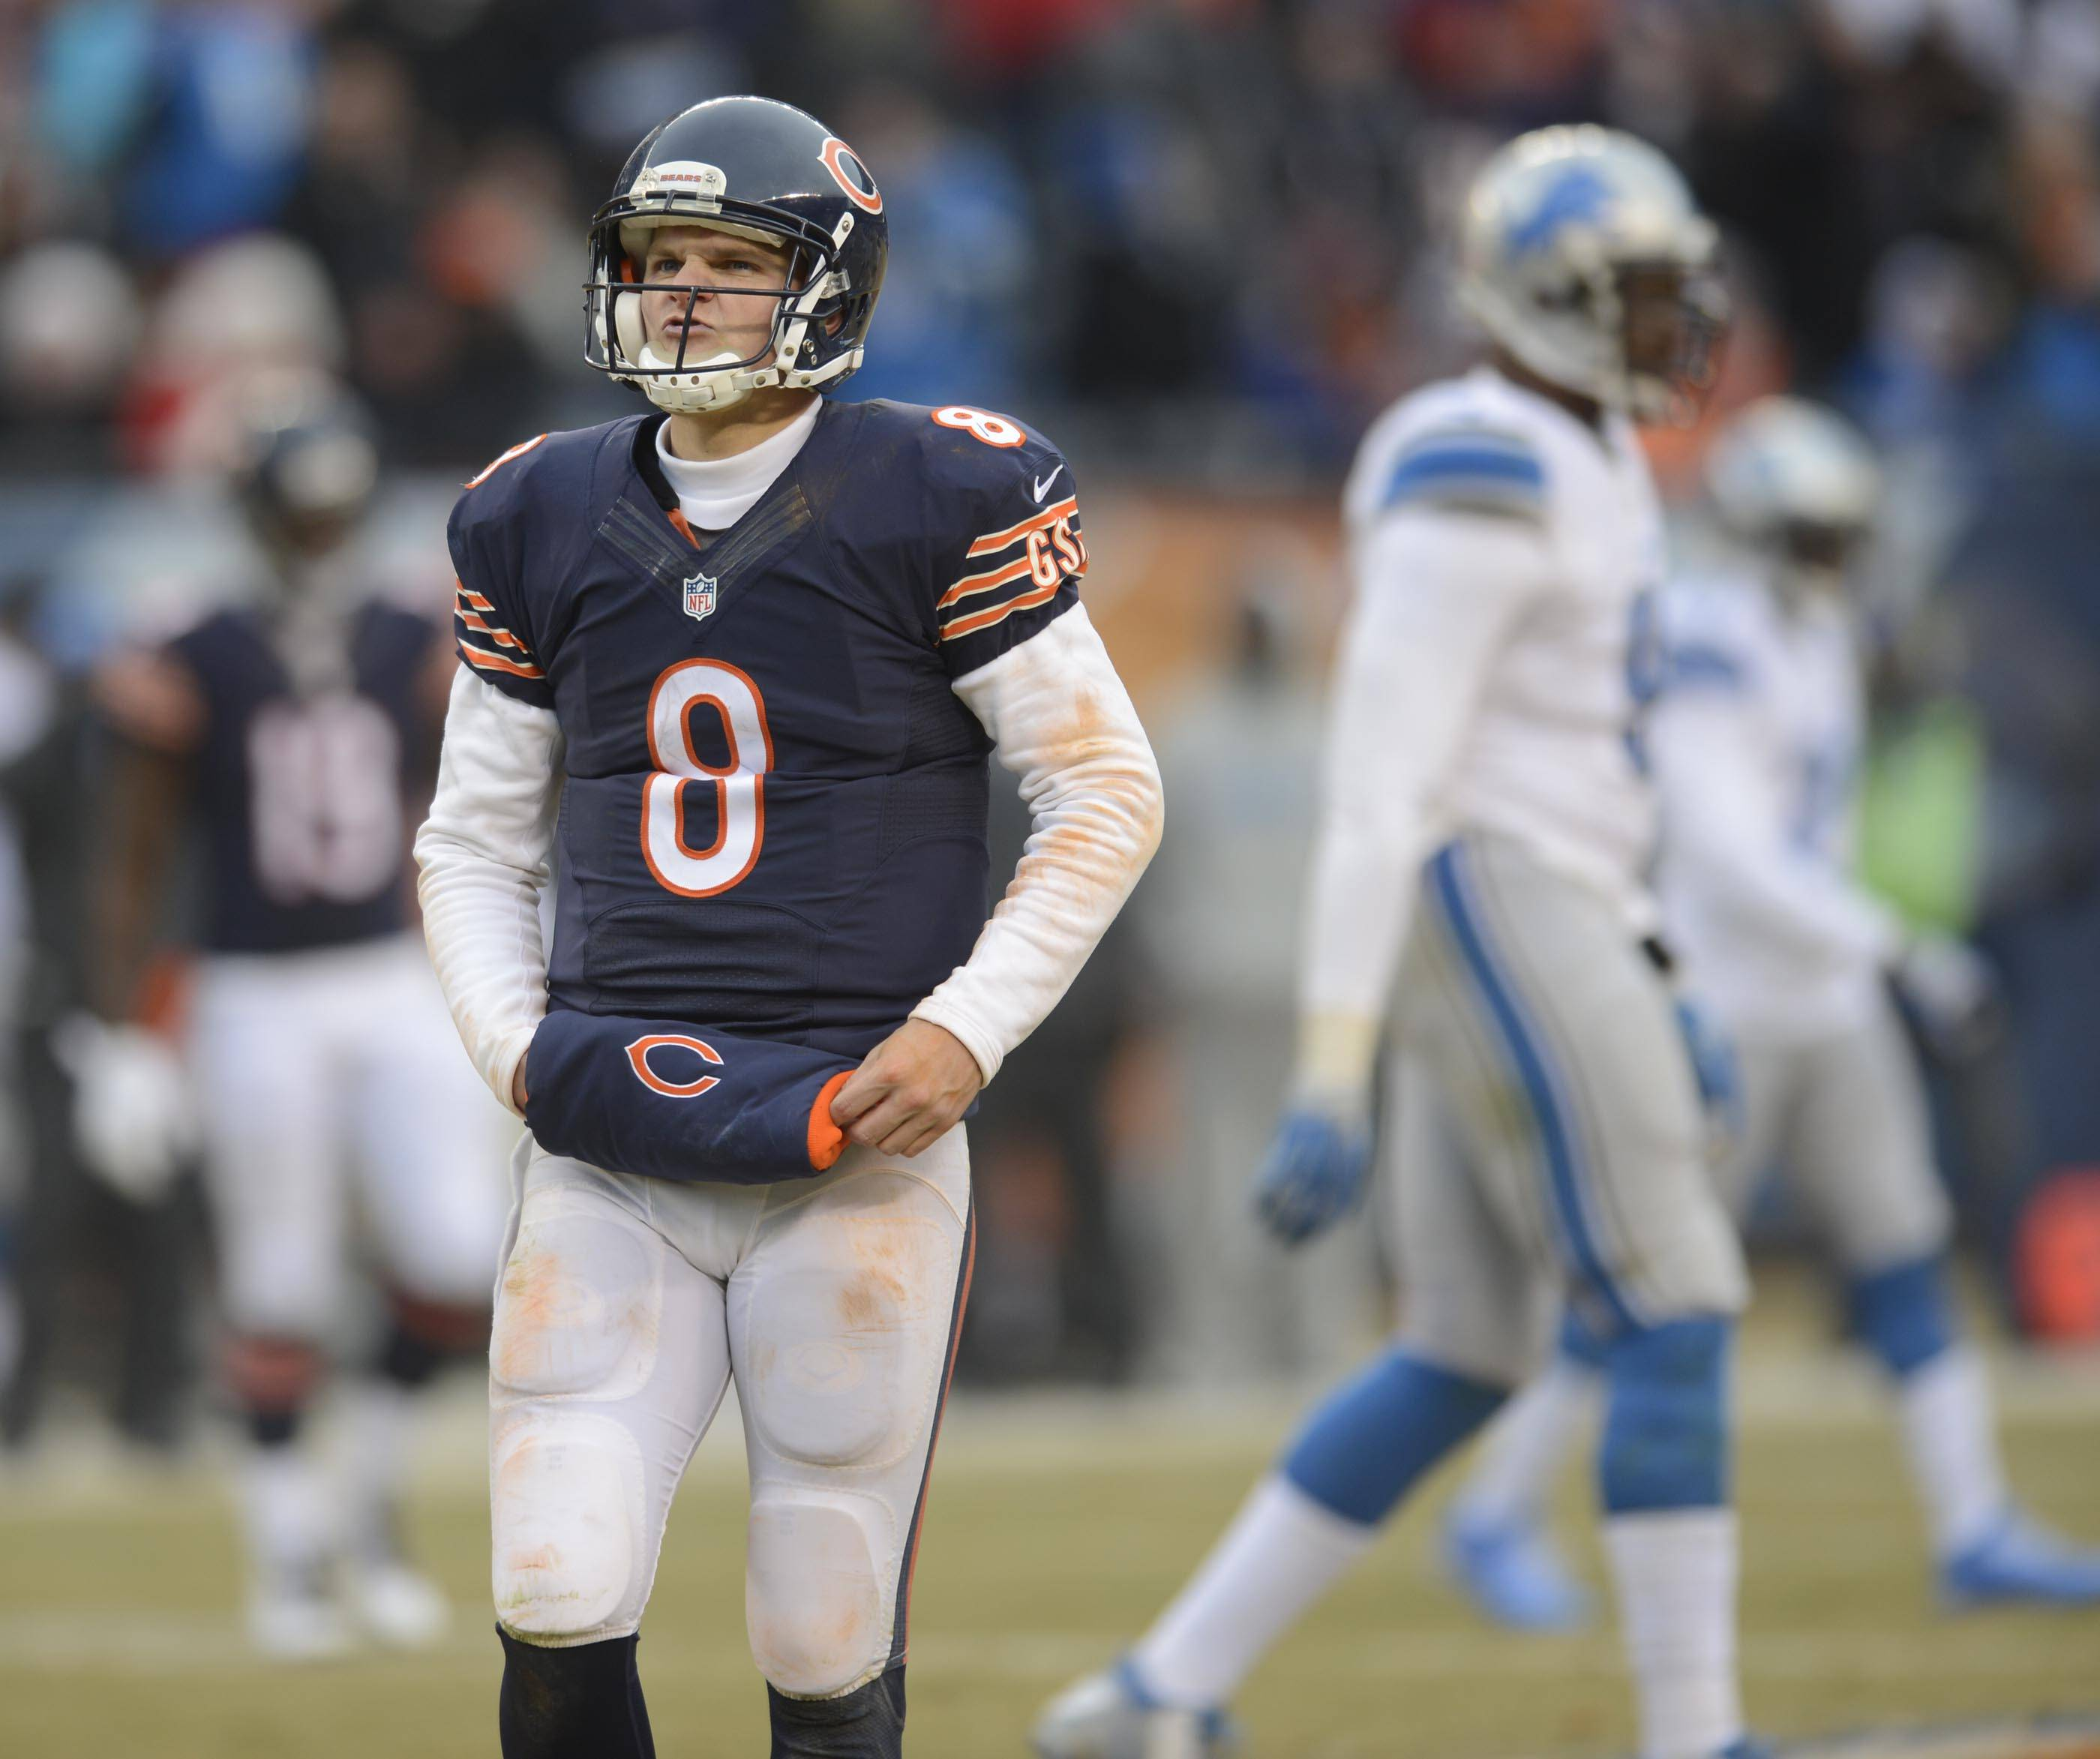 Chicago Bears quarterback Jimmy Clausen reacts after throwing an incomplete pass on third down in their last possession against the Detroit Lions Sunday at Soldier Field in Chicago.